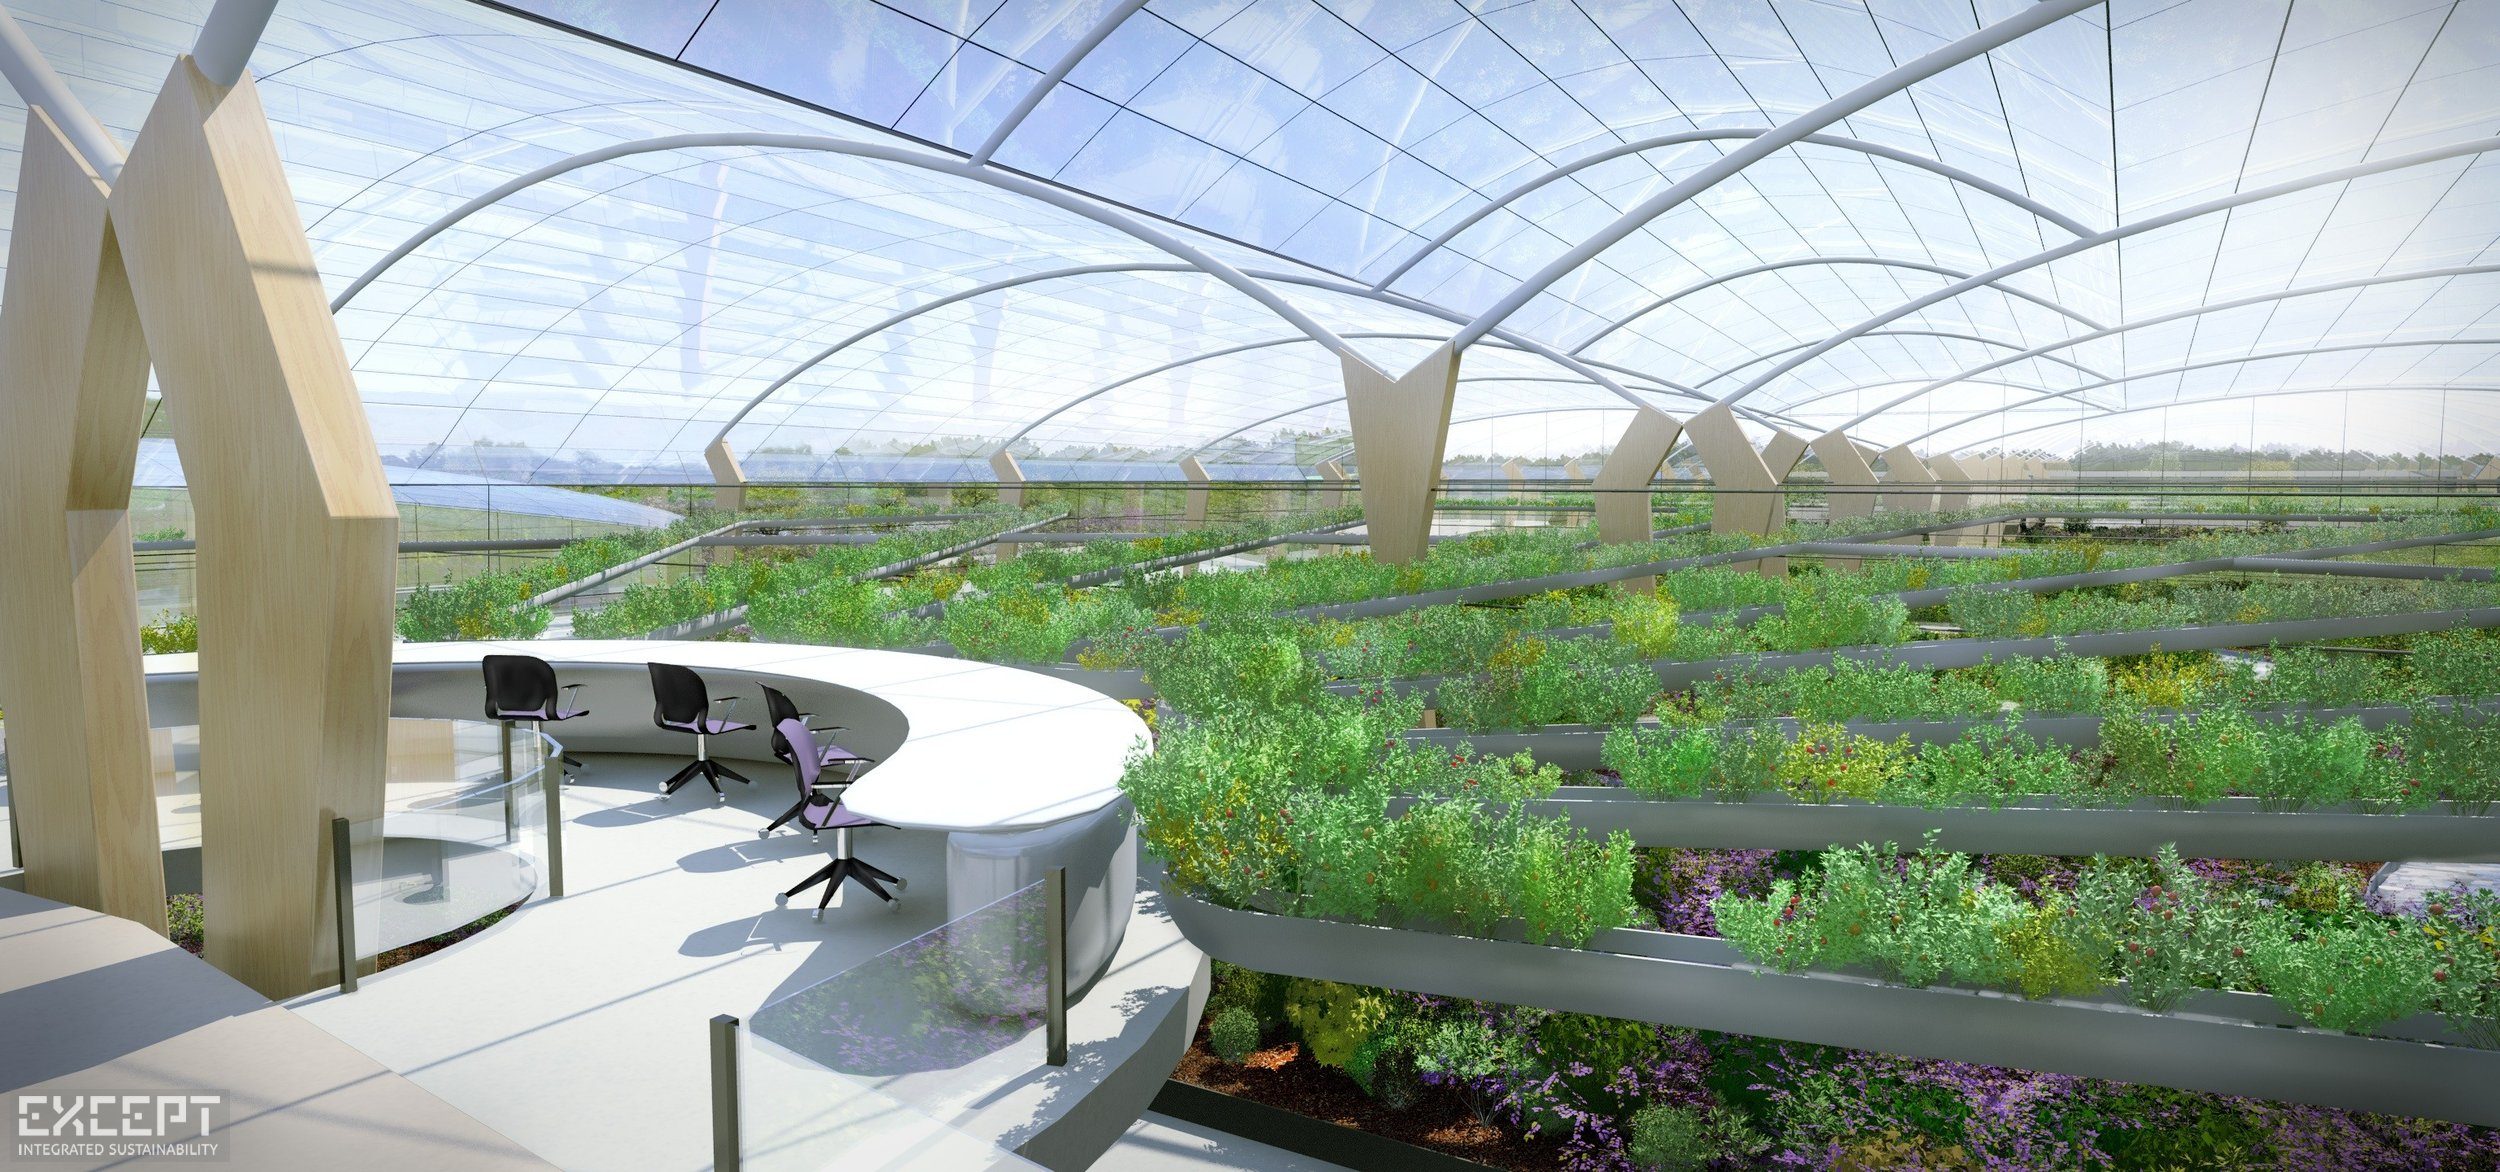 Polydome inside - High performance agriculture ecosystems